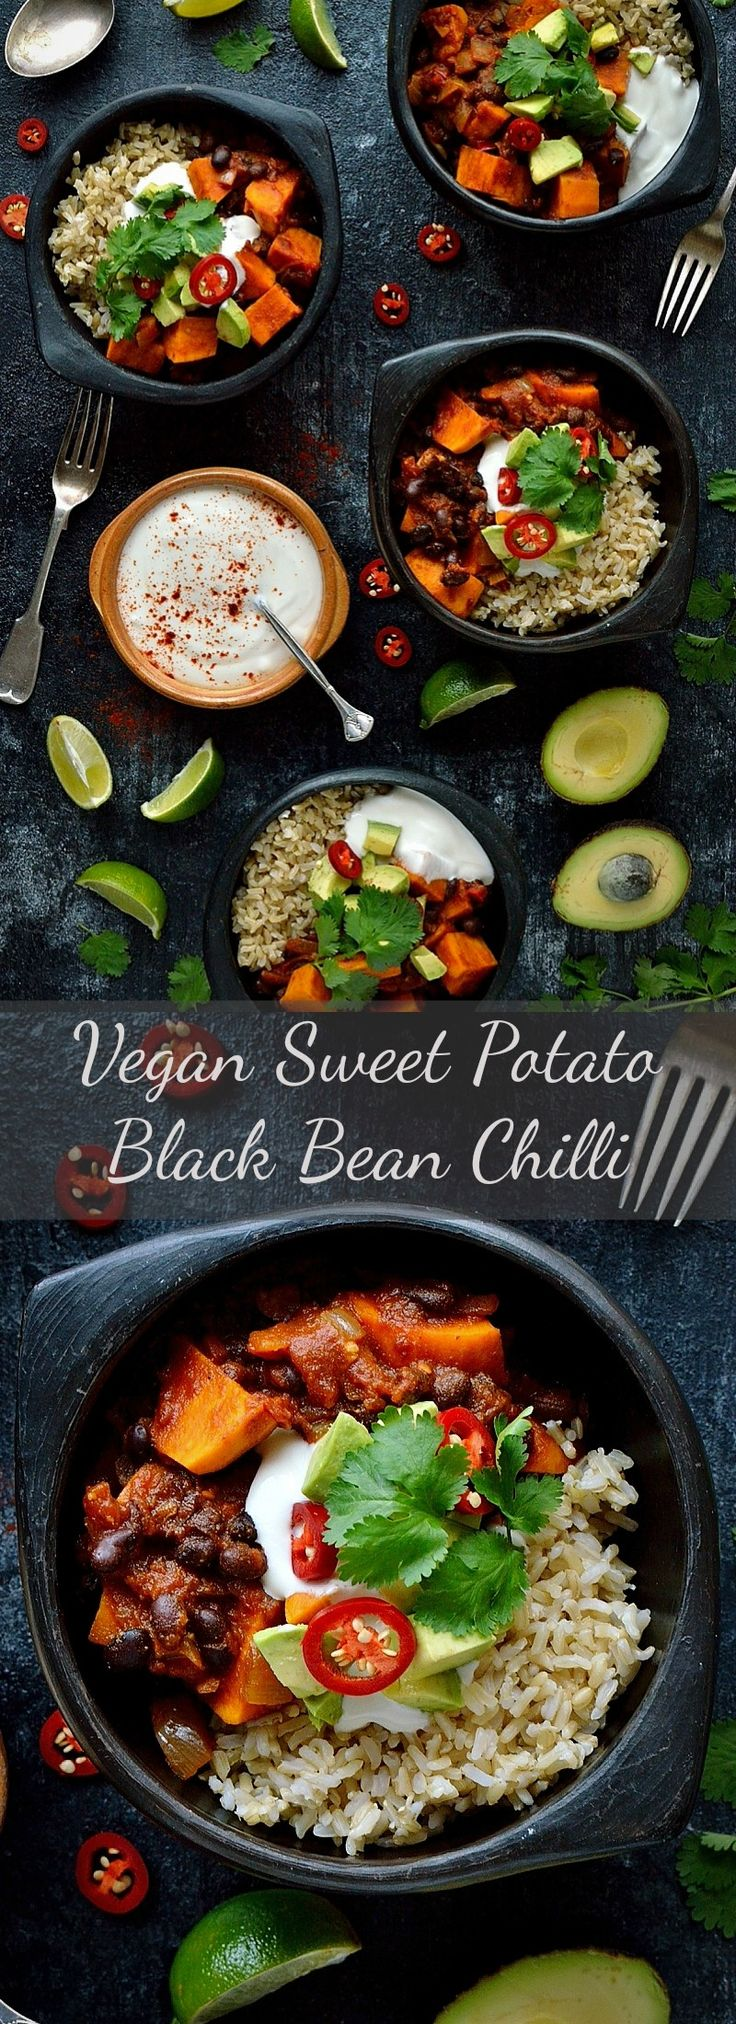 Sweet potato black bean chilli - a hearty, warming, healthy and delicious vegan meal.